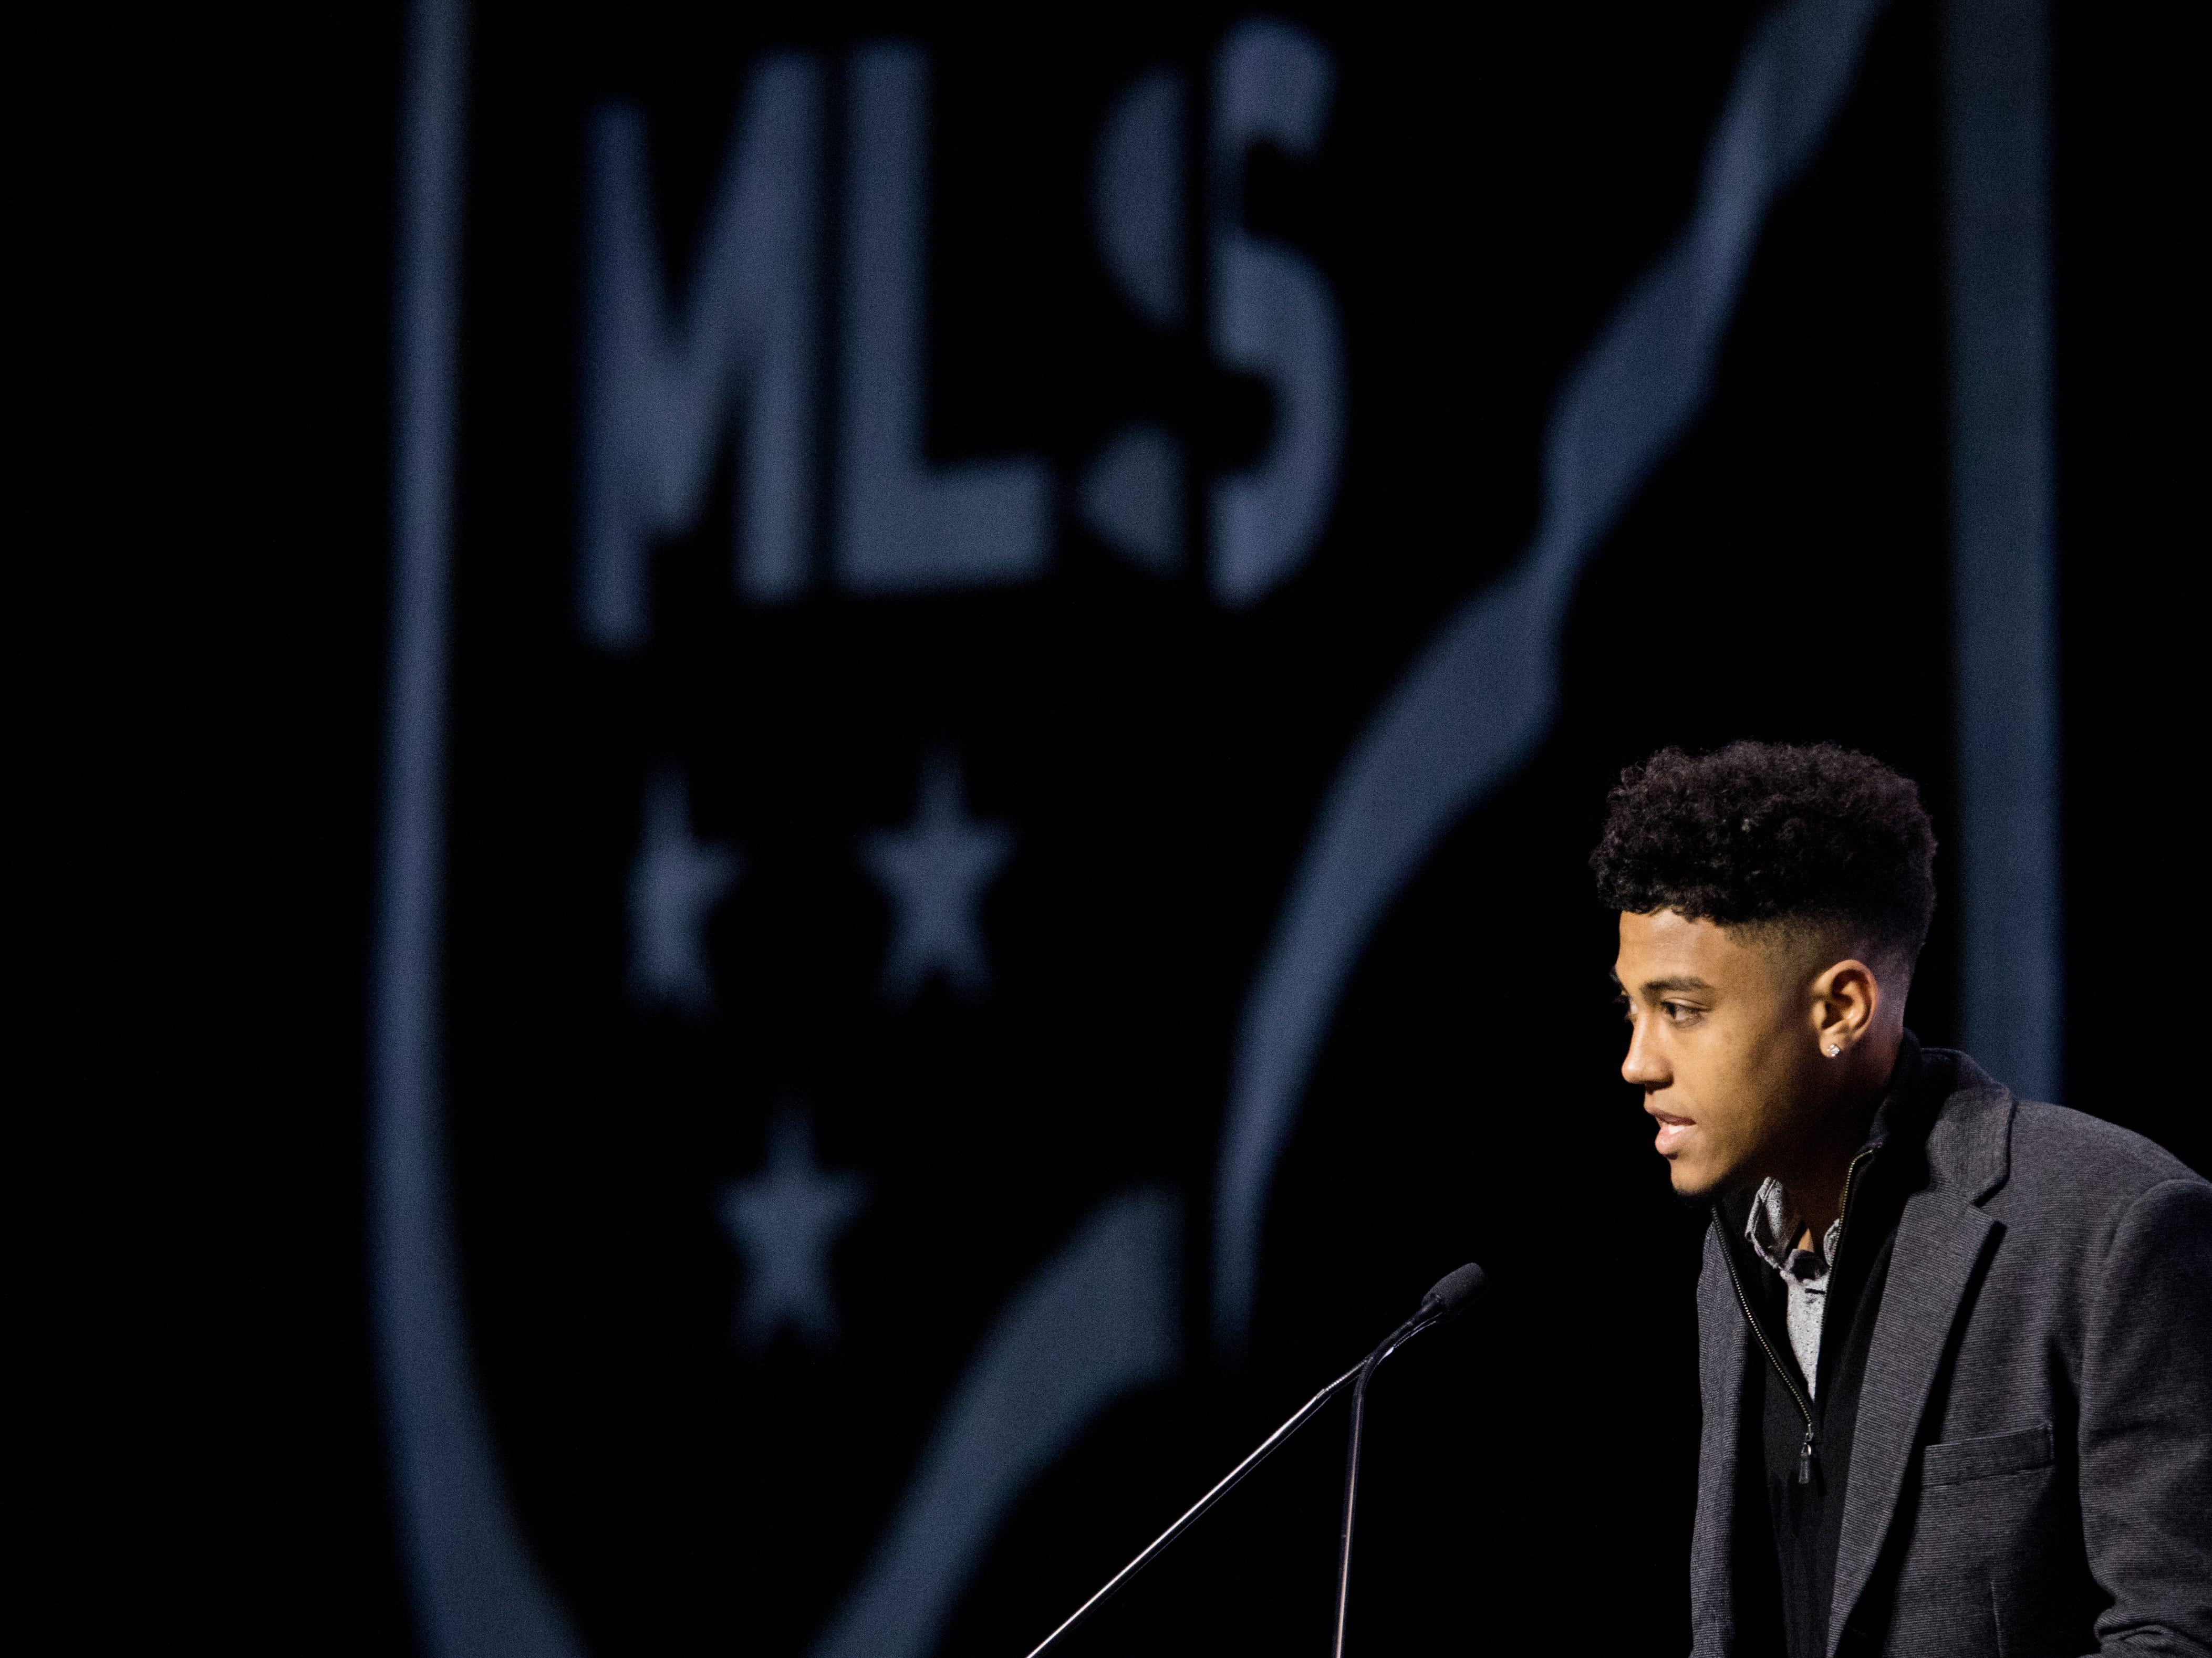 Logan Gdula speaks after being picked by FC Cincinnati as the 13th pick of the first round of the MLS Superdraft on Friday, Jan. 11, 2019 in Chicago, Illinois.